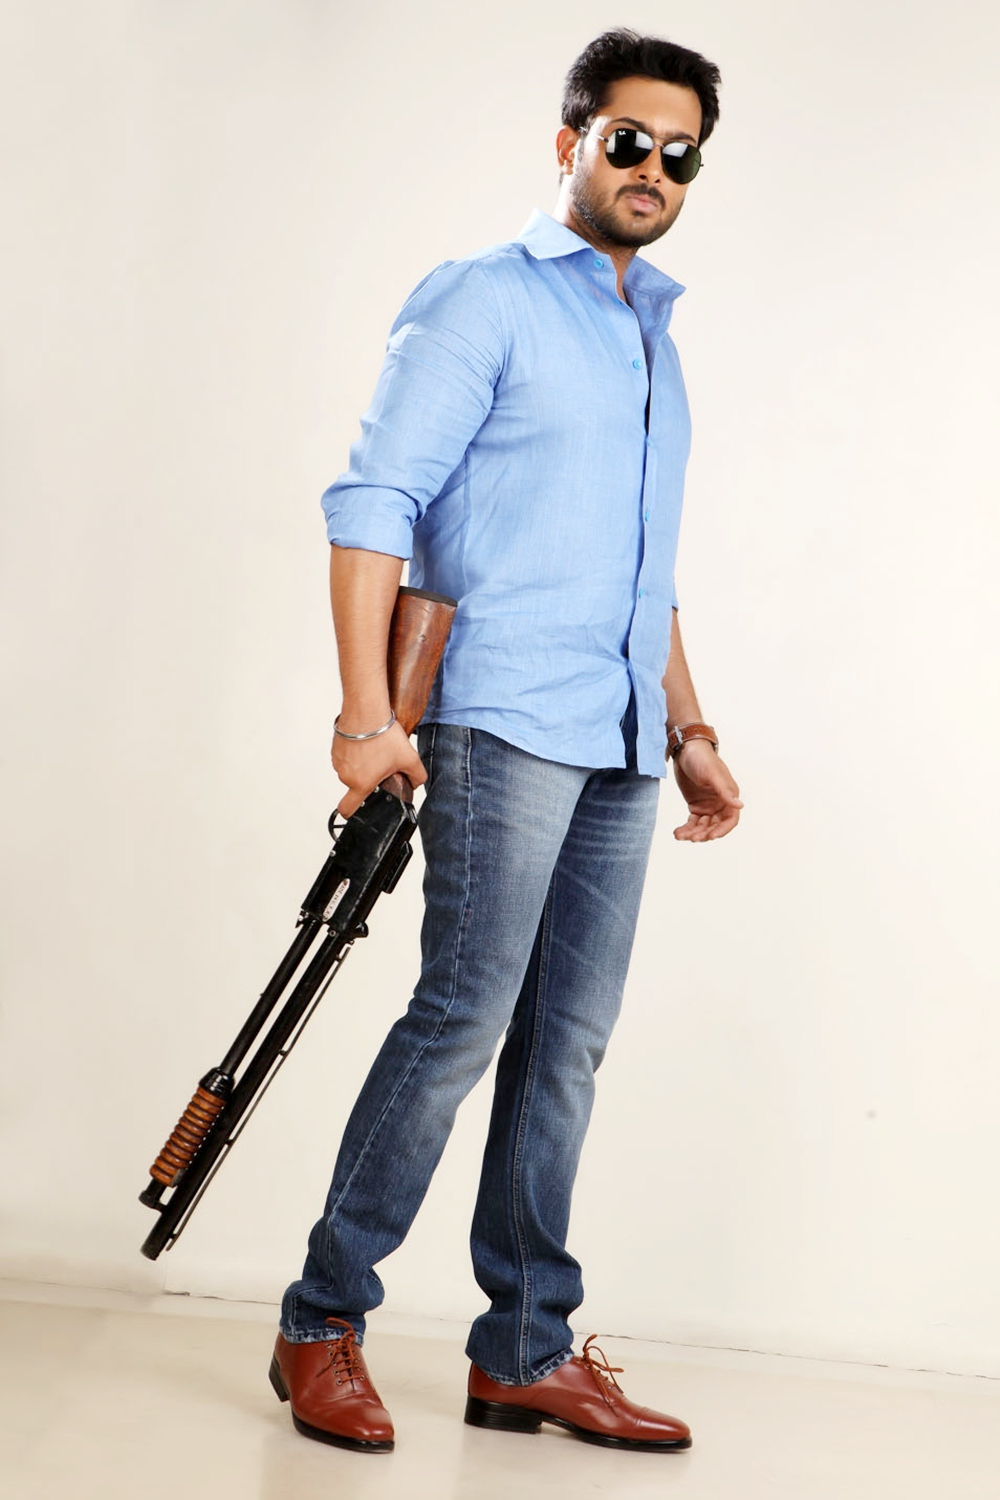 Prince Downloads: Uday Kiran In His New Movie Stills HQ